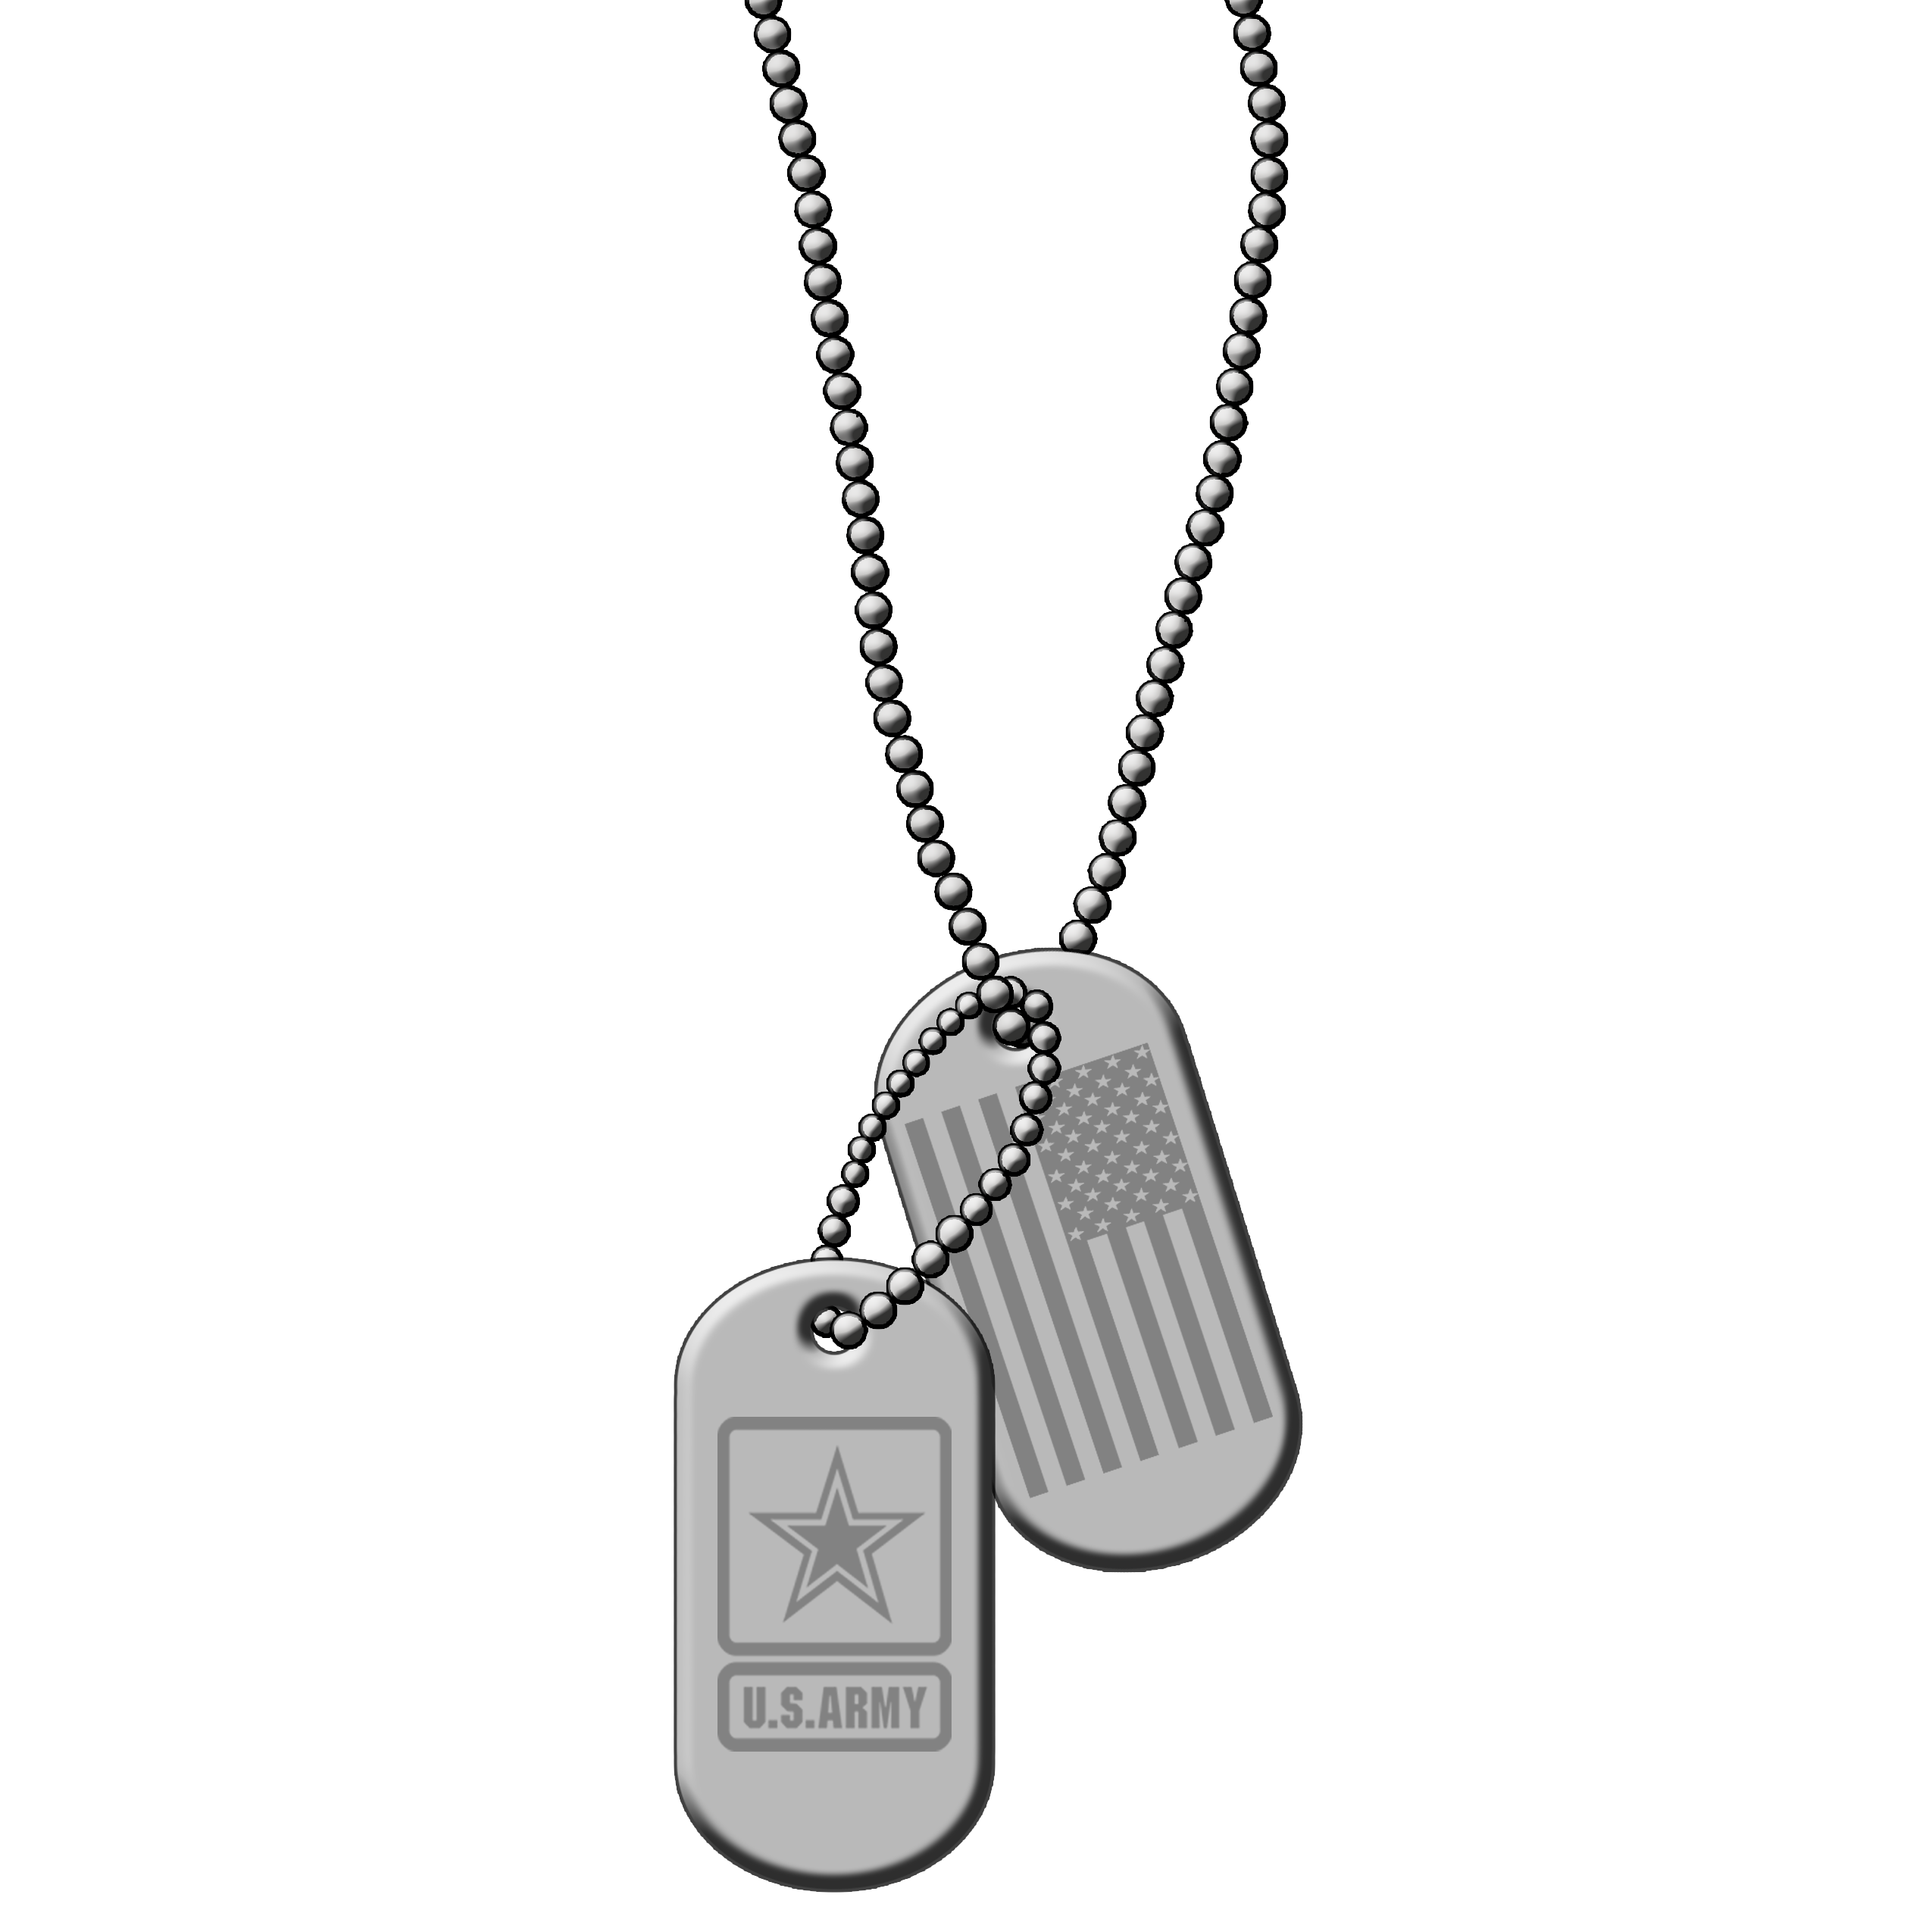 Dog tag United States Military Army Soldier.